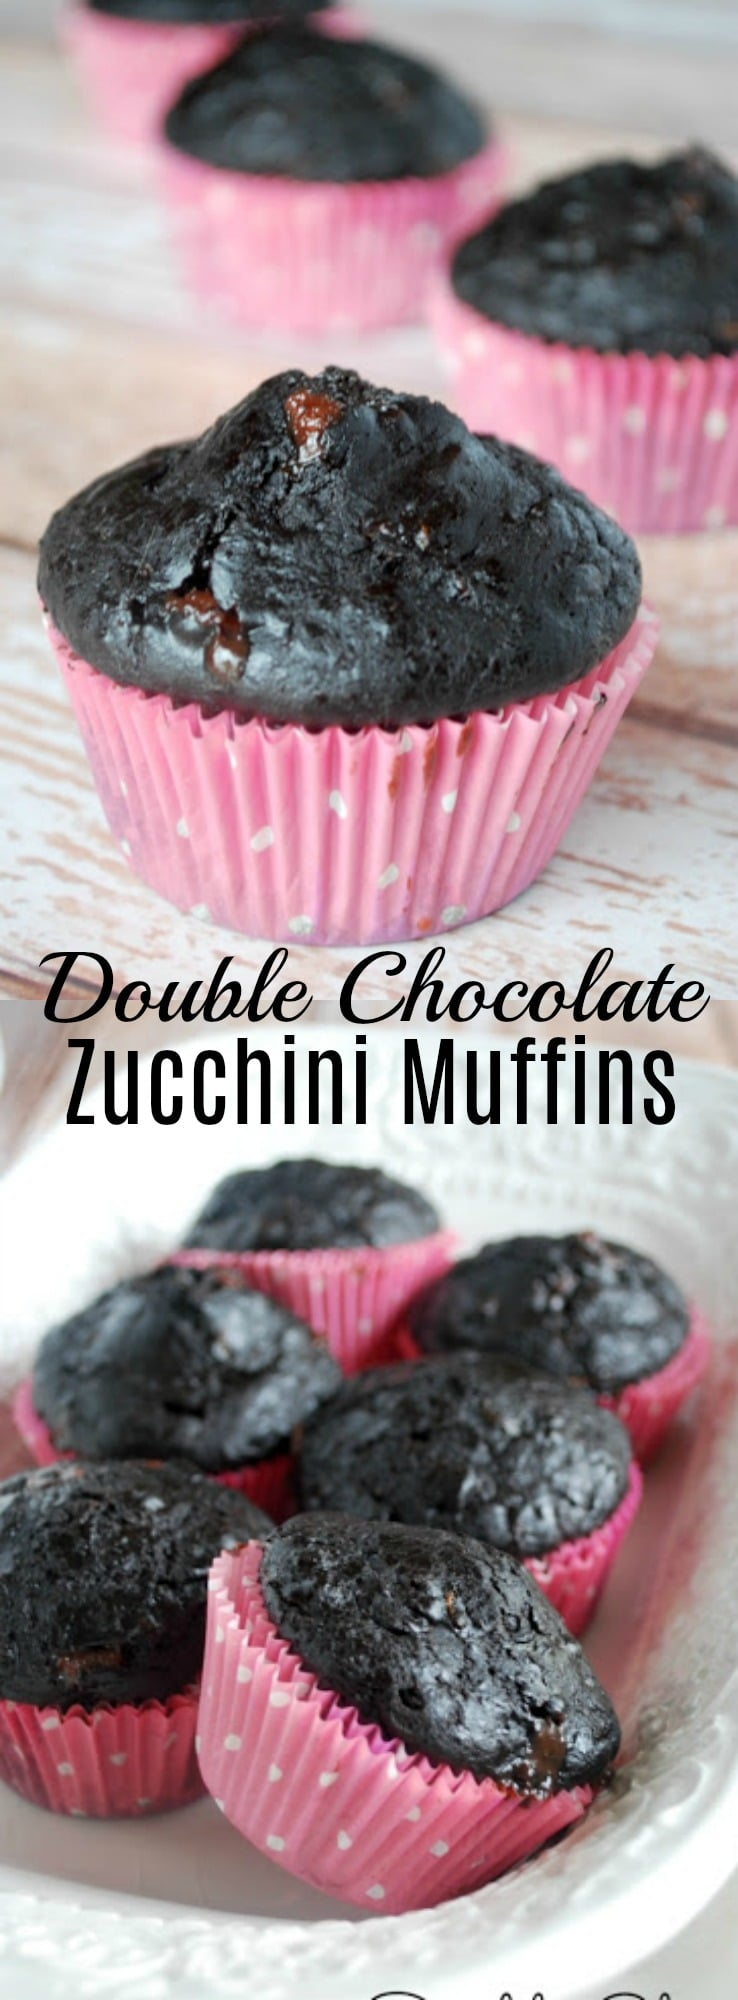 These ultra moist and decadent double chocolate zucchini muffins scream dessert, but they are secretly healthy! No one will ever guess!